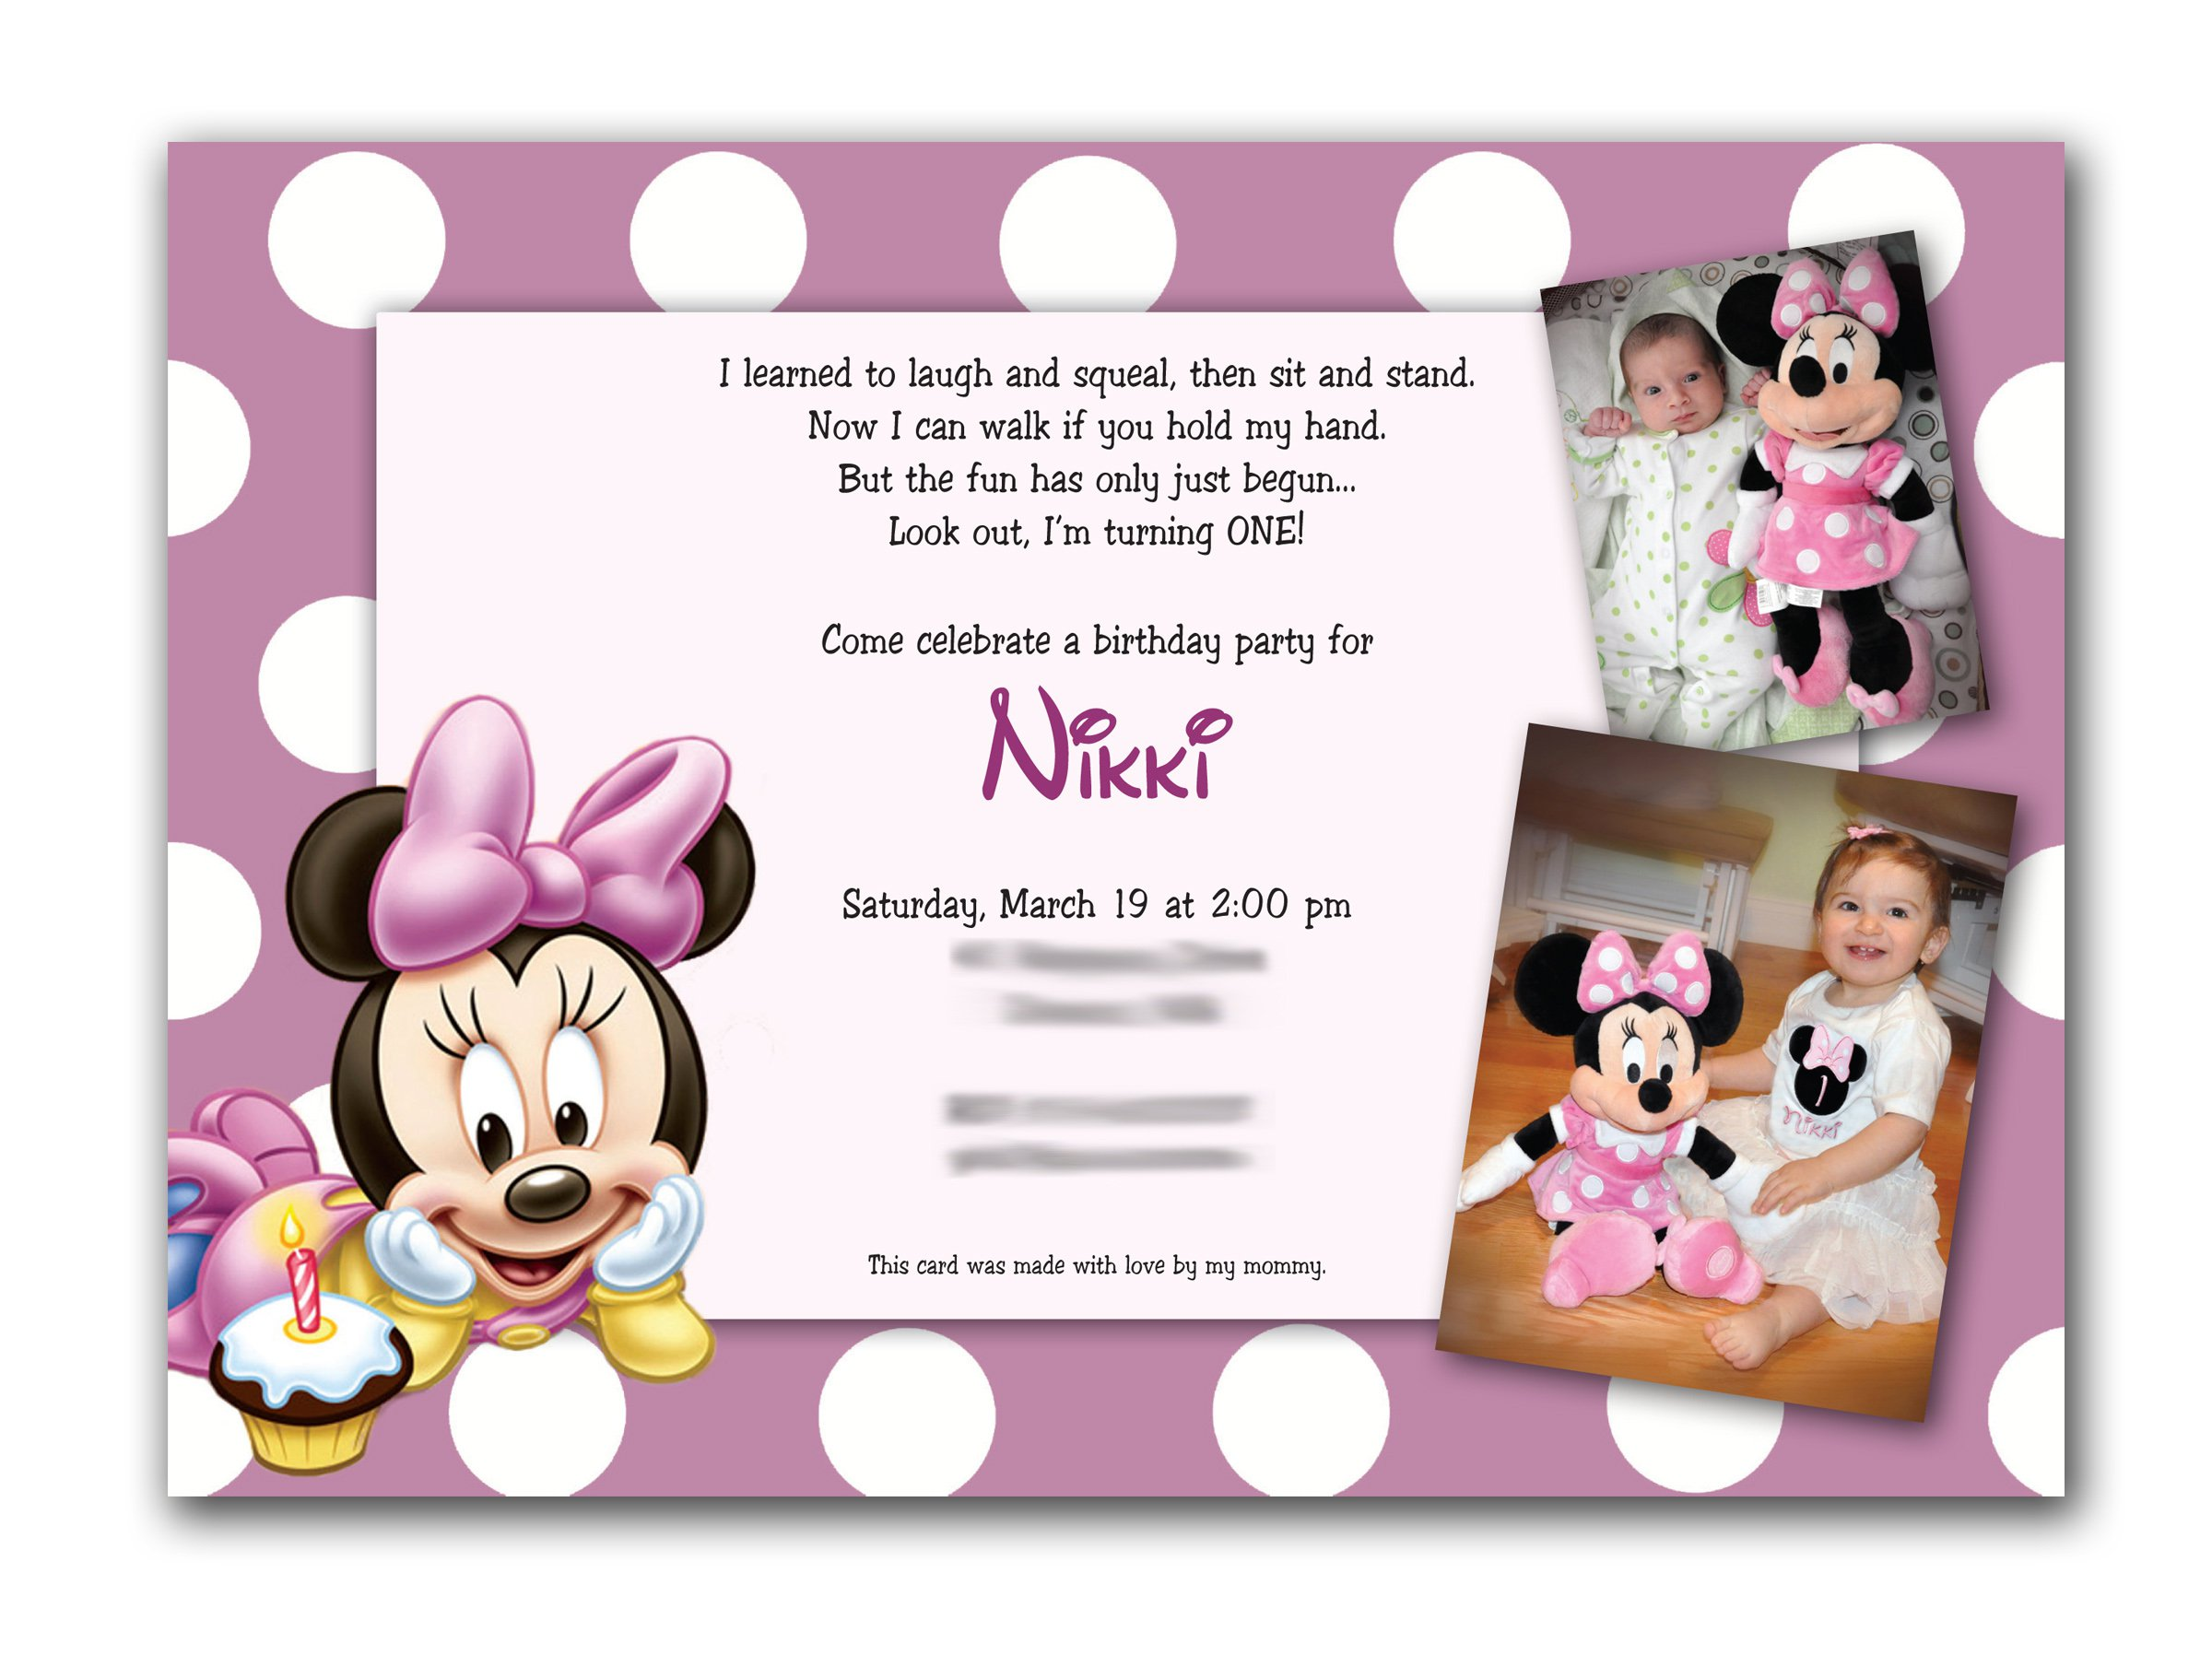 Fun Invitation Wording For Birthday